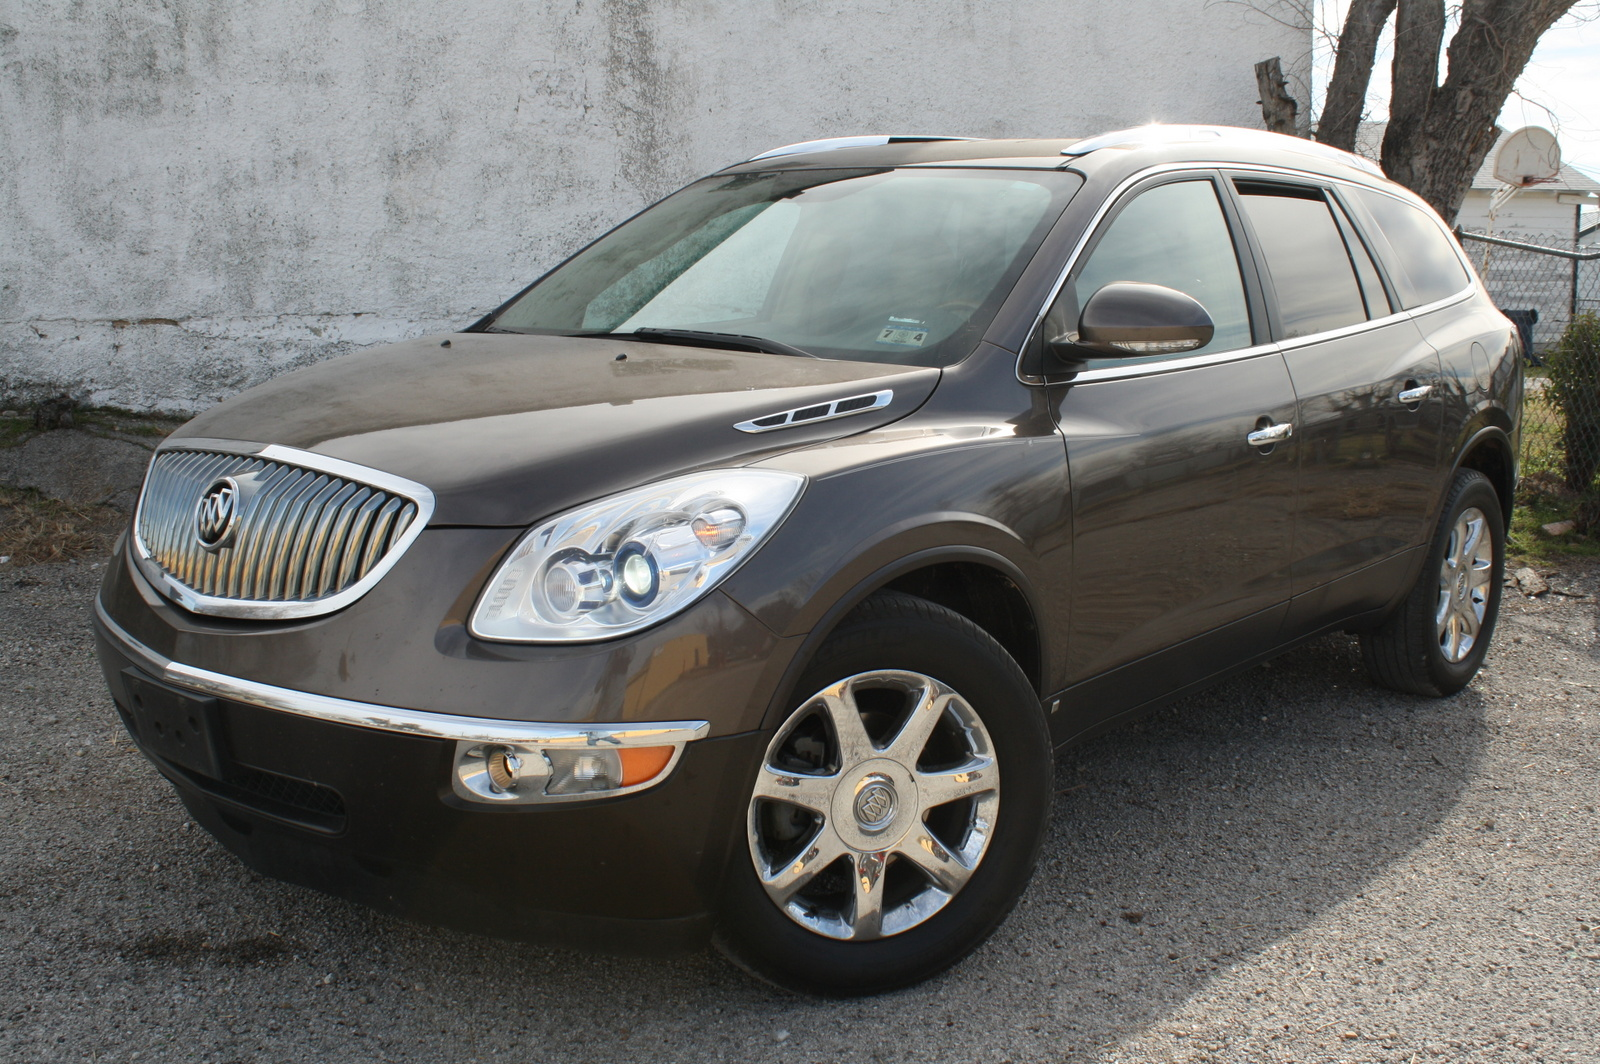 2009 buick lacrosse cxl awd related infomation specifications weili automotive network. Black Bedroom Furniture Sets. Home Design Ideas